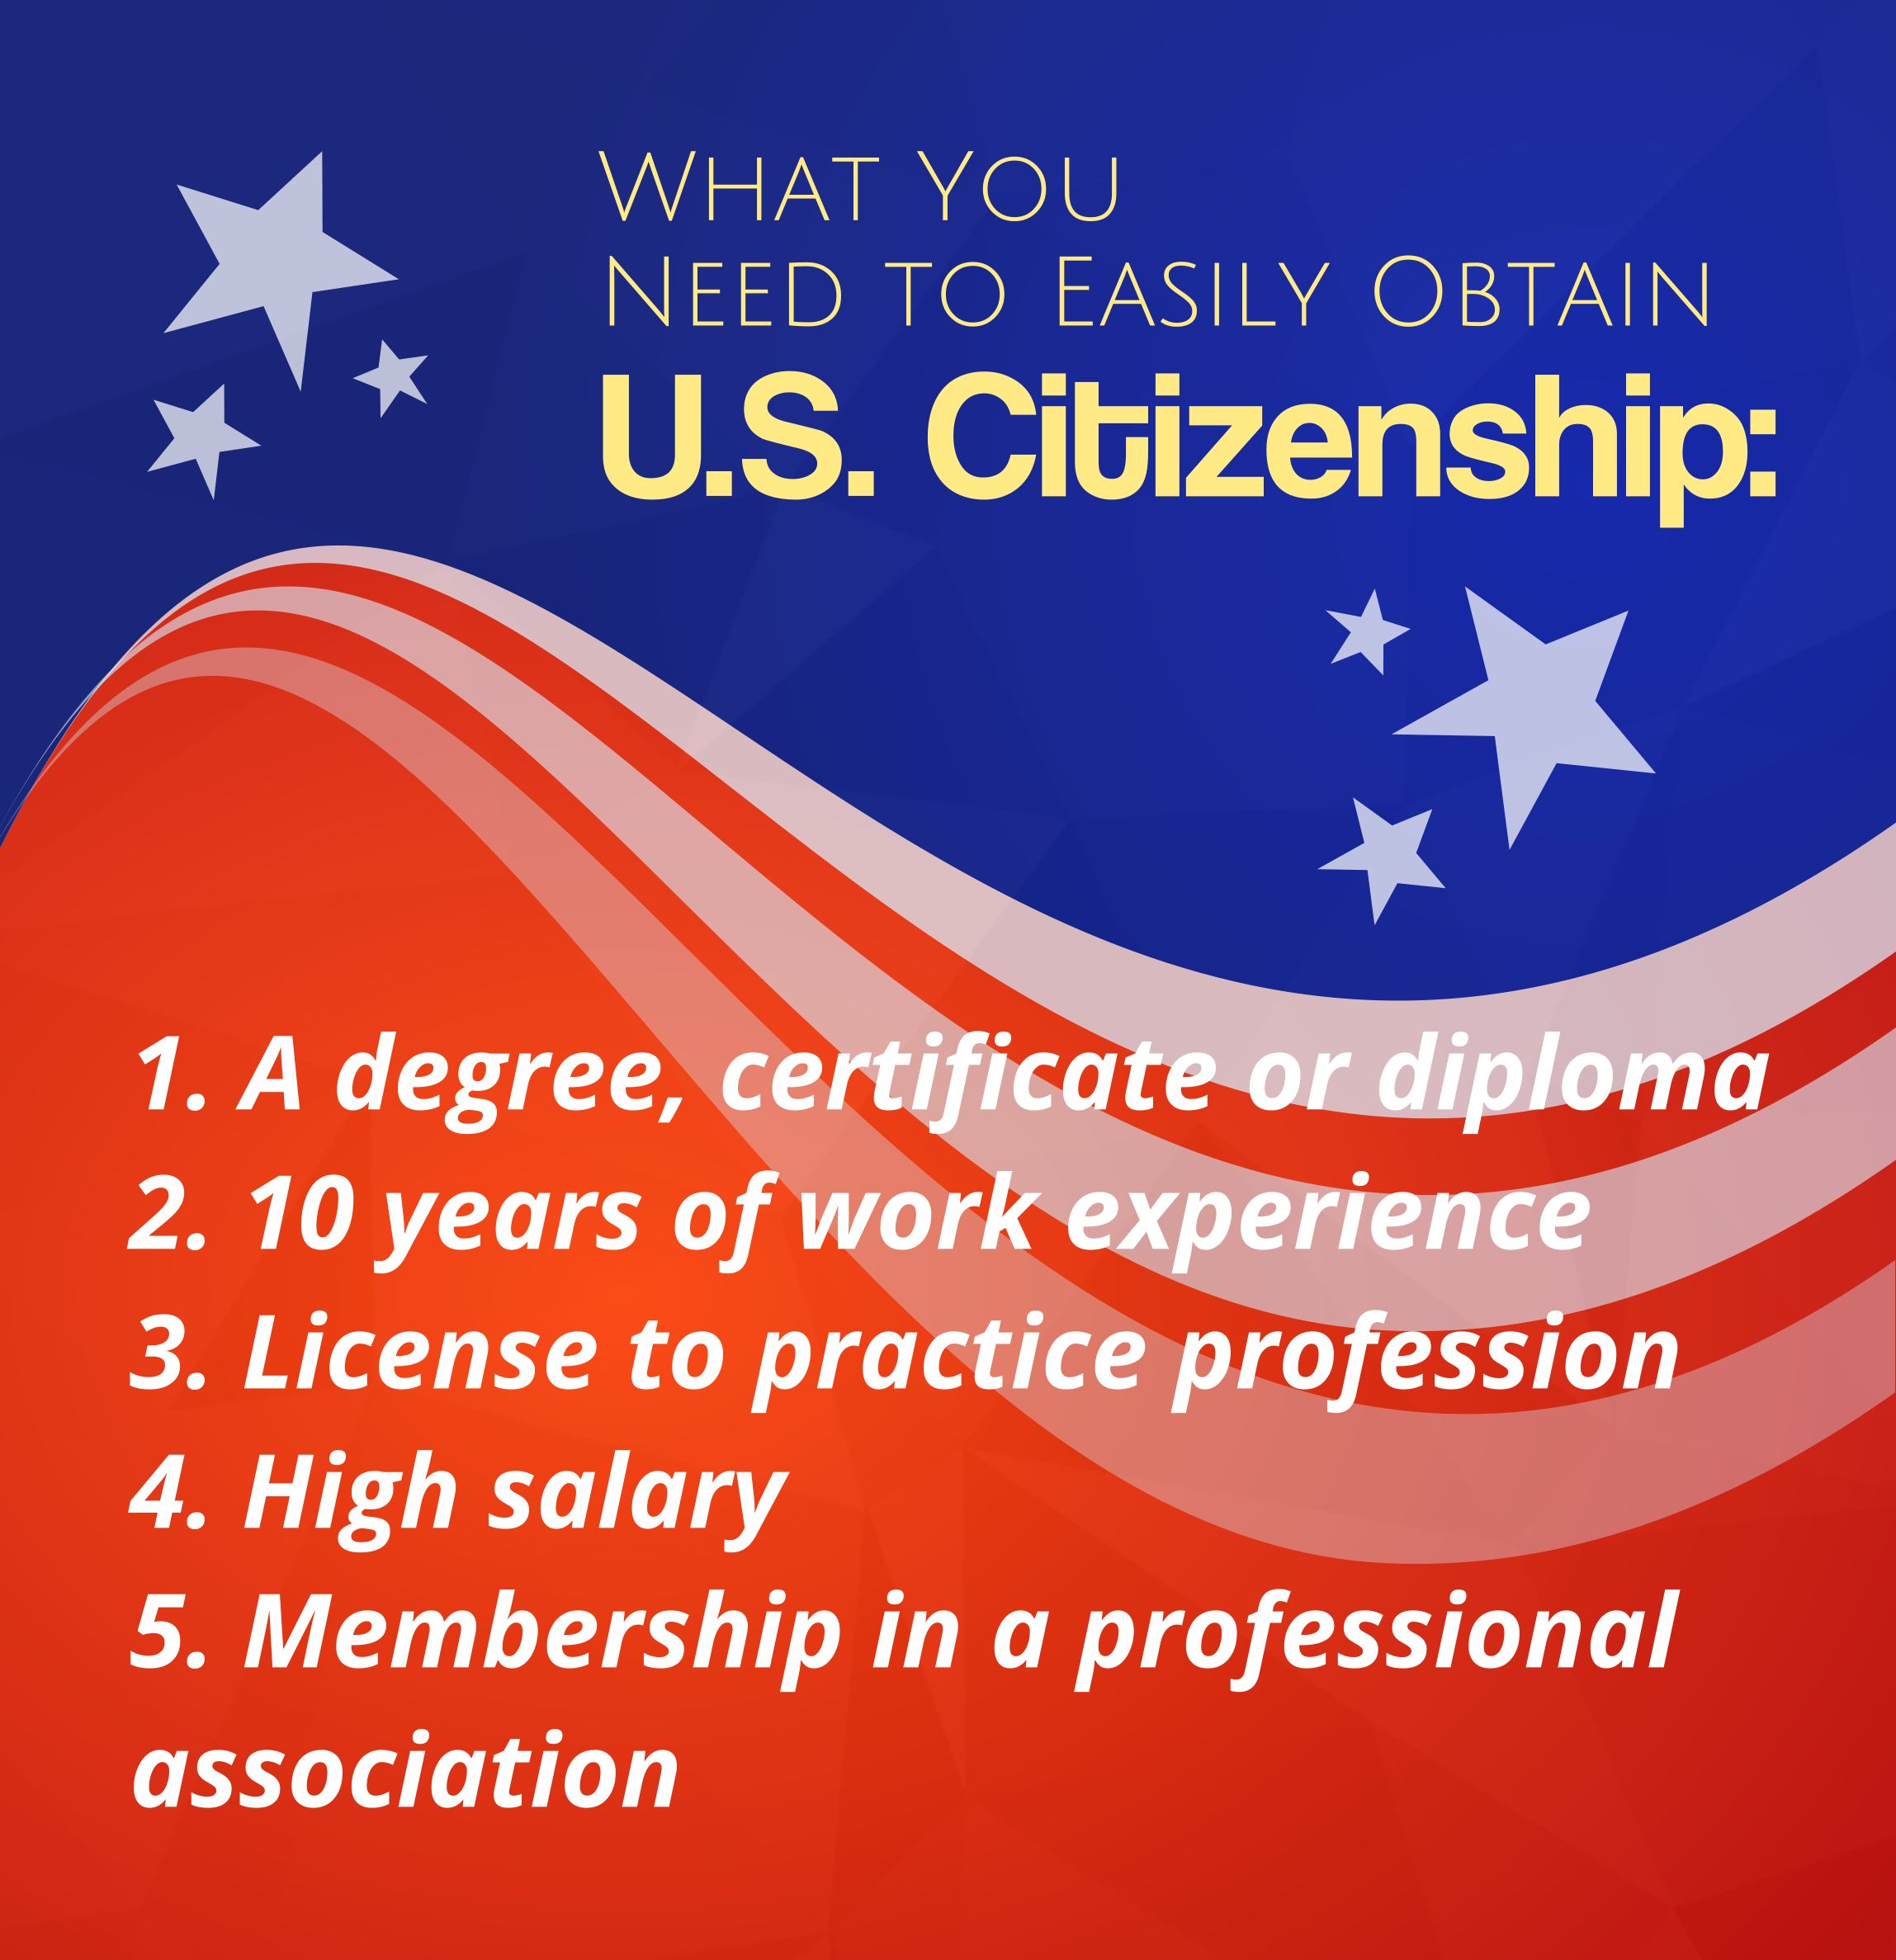 How to obtain US citizenship